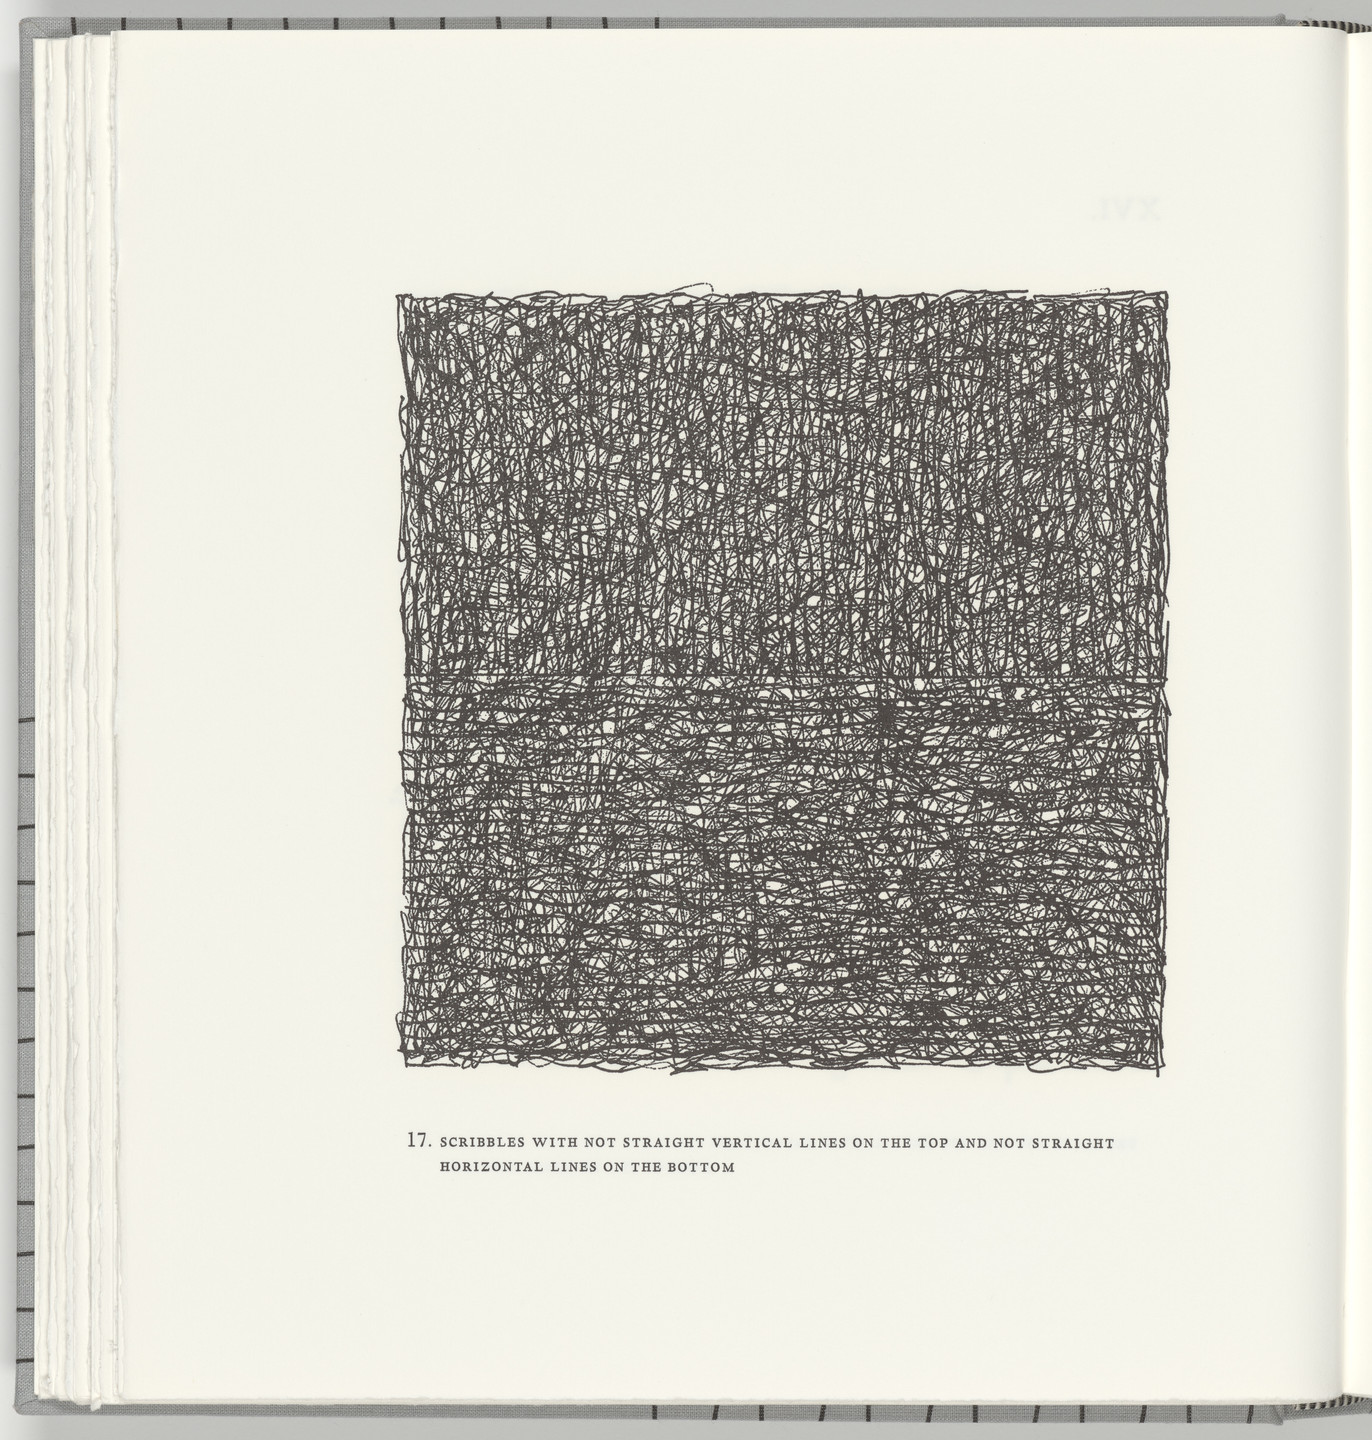 Sol LeWitt. Scribbles with Not Straight Vertical Lines on the Top and Not Straight Horizontal Lines on the Bottom (plate 17) from Squarings. 2003